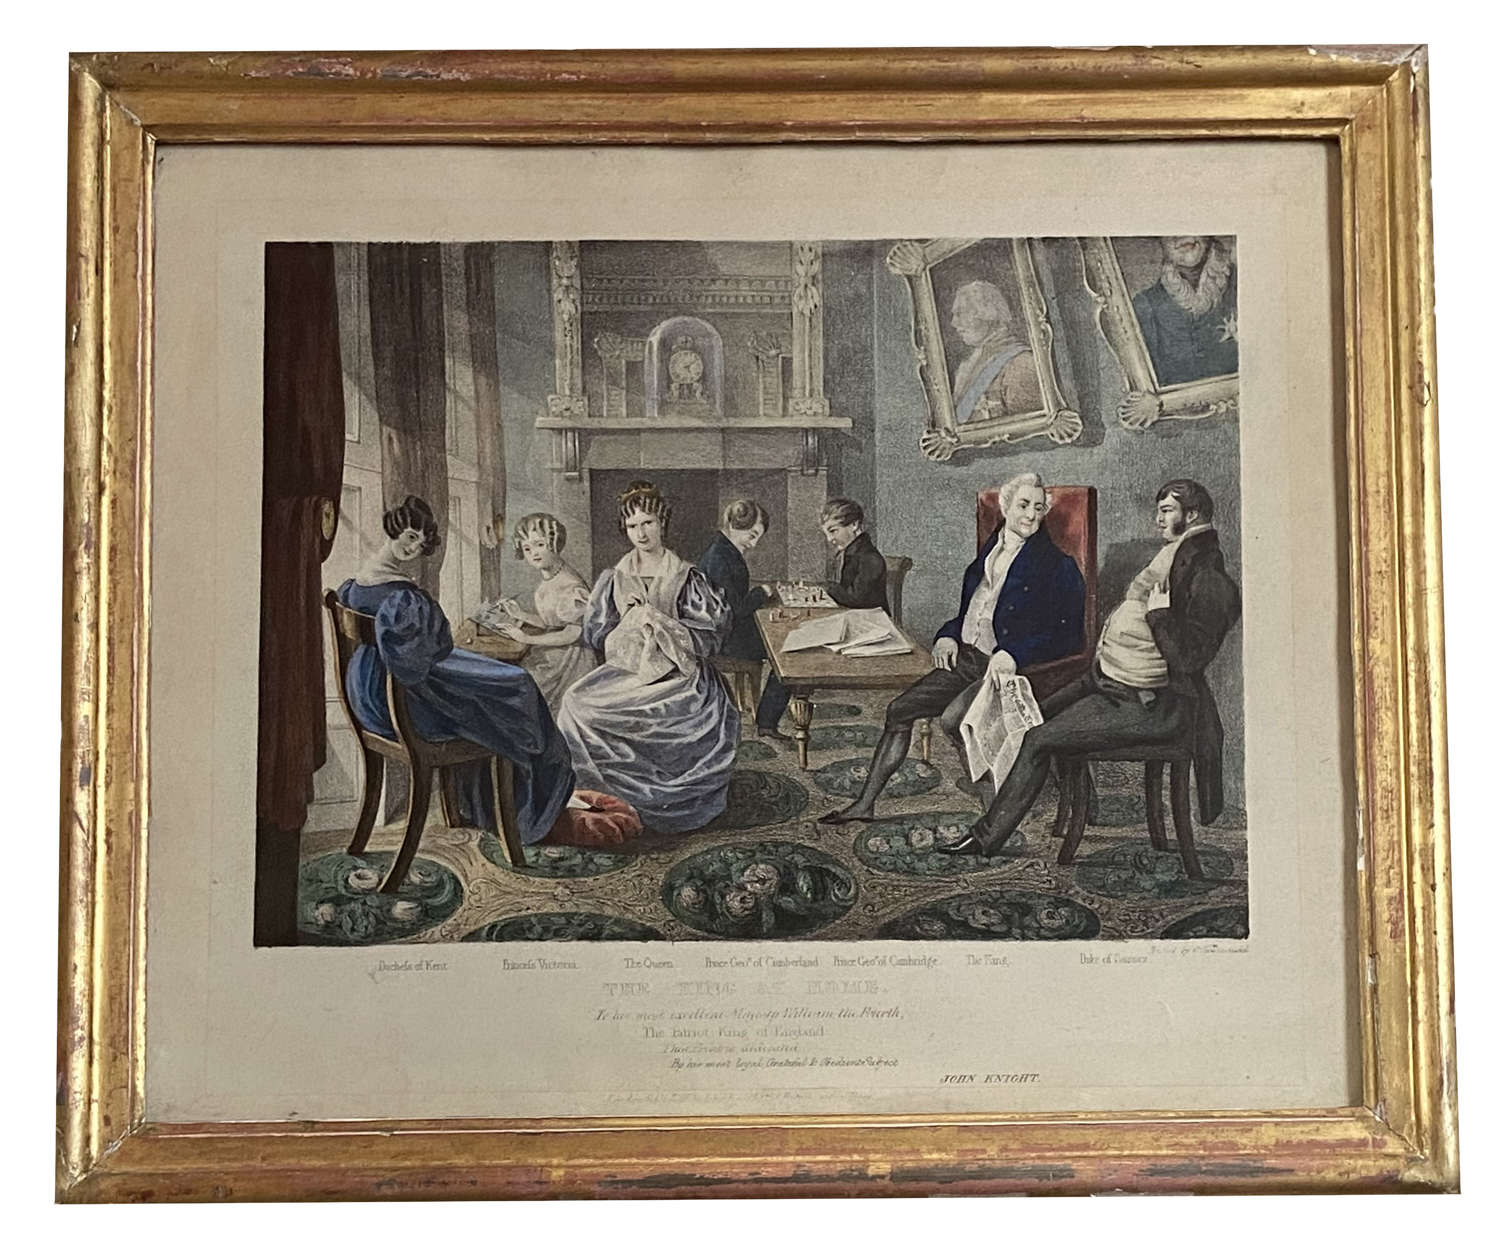 The King at home. William IV and Princess Victoria